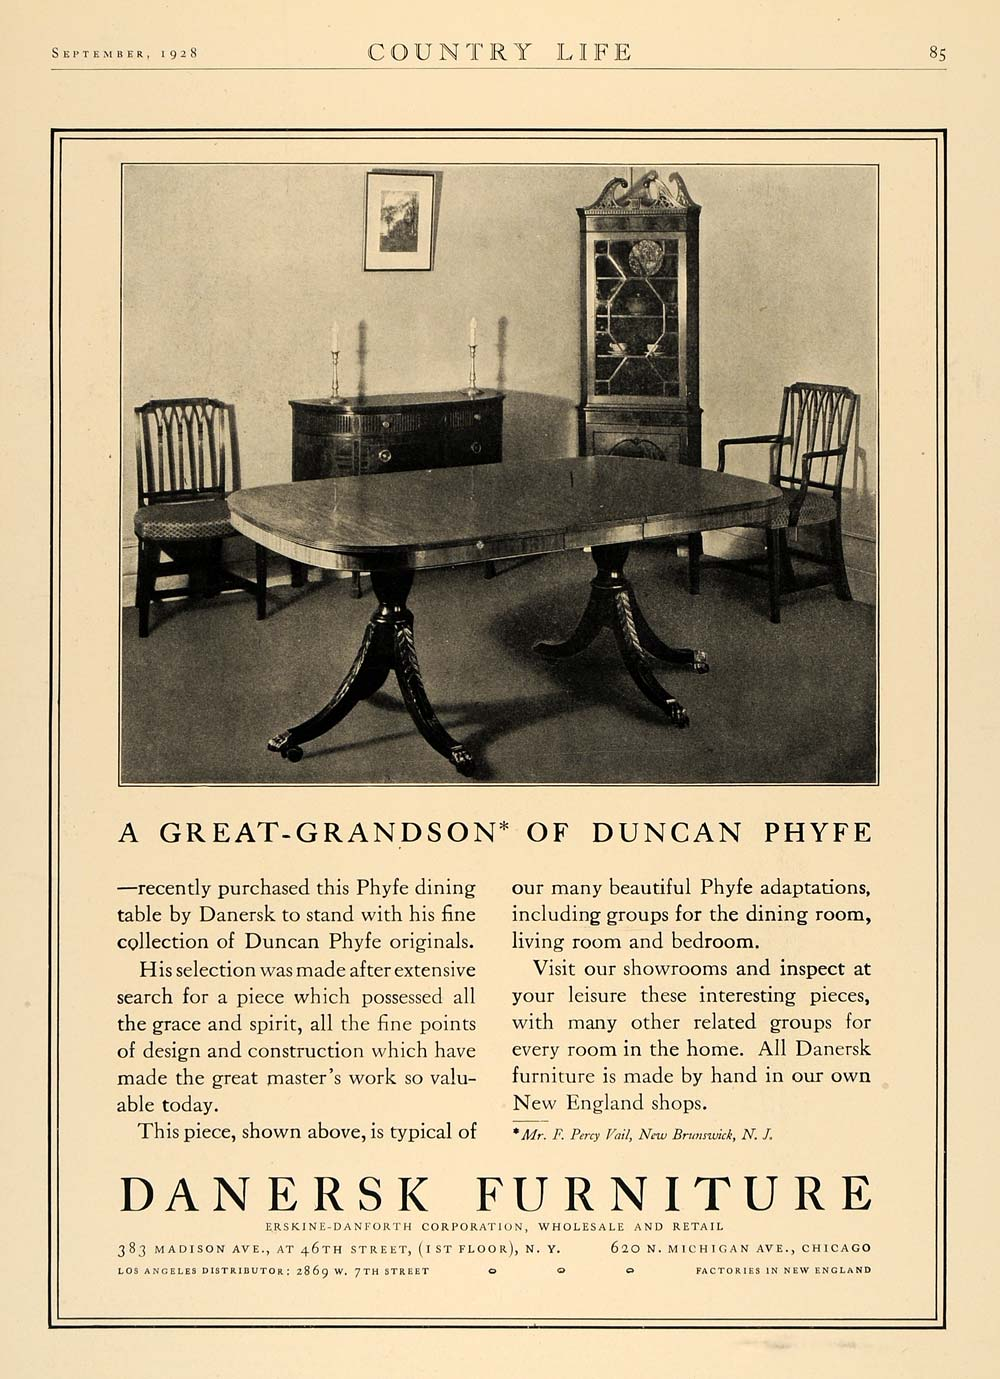 1928 Ad Danersk Furniture Percy Vail Duncan Phyfe Table - ORIGINAL CL6